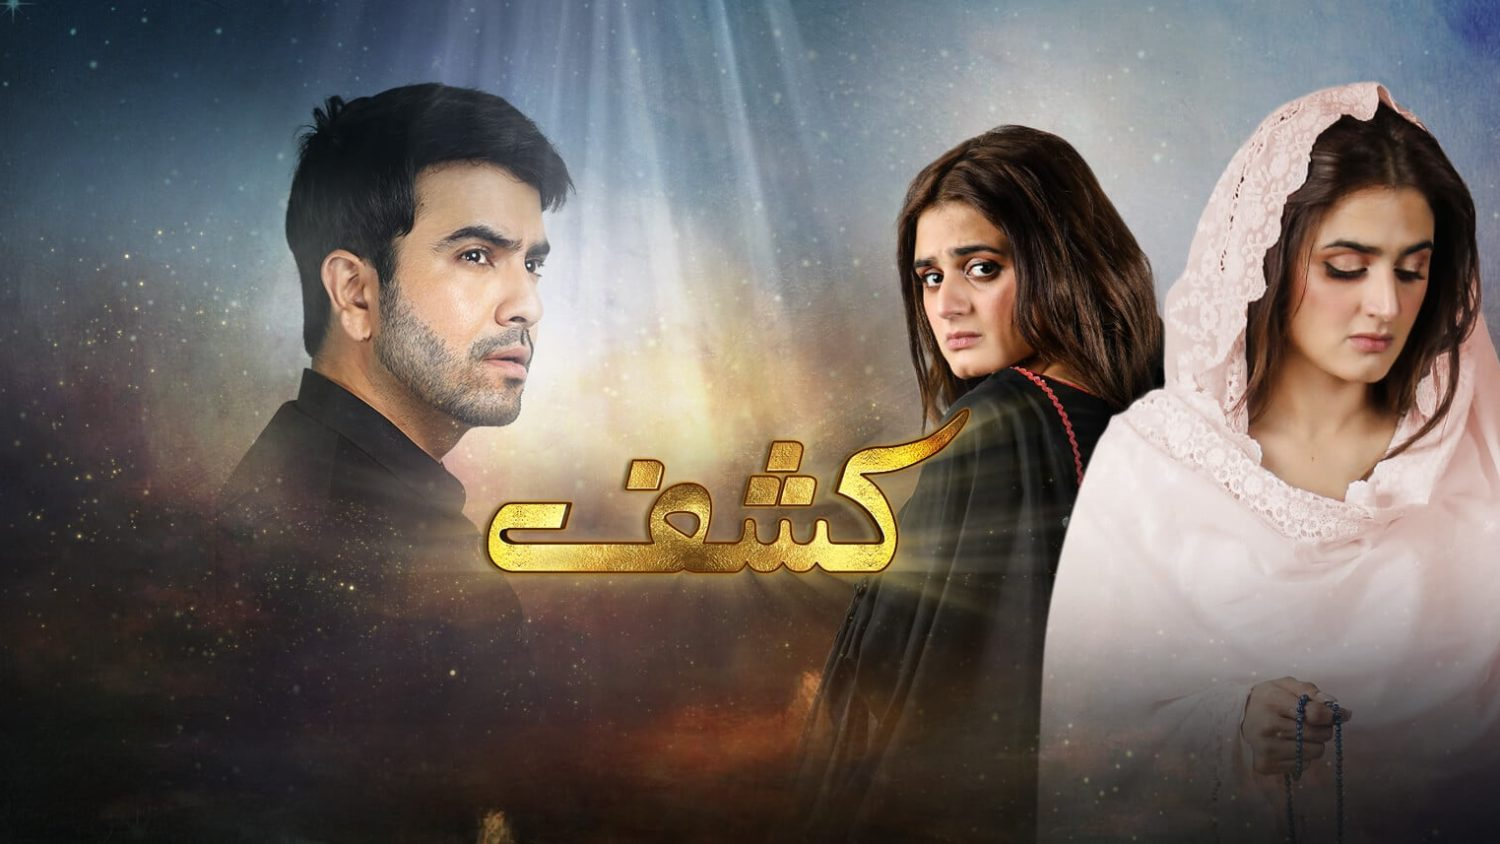 Although there are so many dramas going on-air these days on different channels, however, some of these are best. It is so difficult to make a long watch list of Pakistani dramas these days as at every hour, there is a new drama episode to watch. So, here we have compiled details of all those best drama serials to watch in Pakistan that are relevantly new and have a good story plot. Check out this list and schedule to watch accordingly.